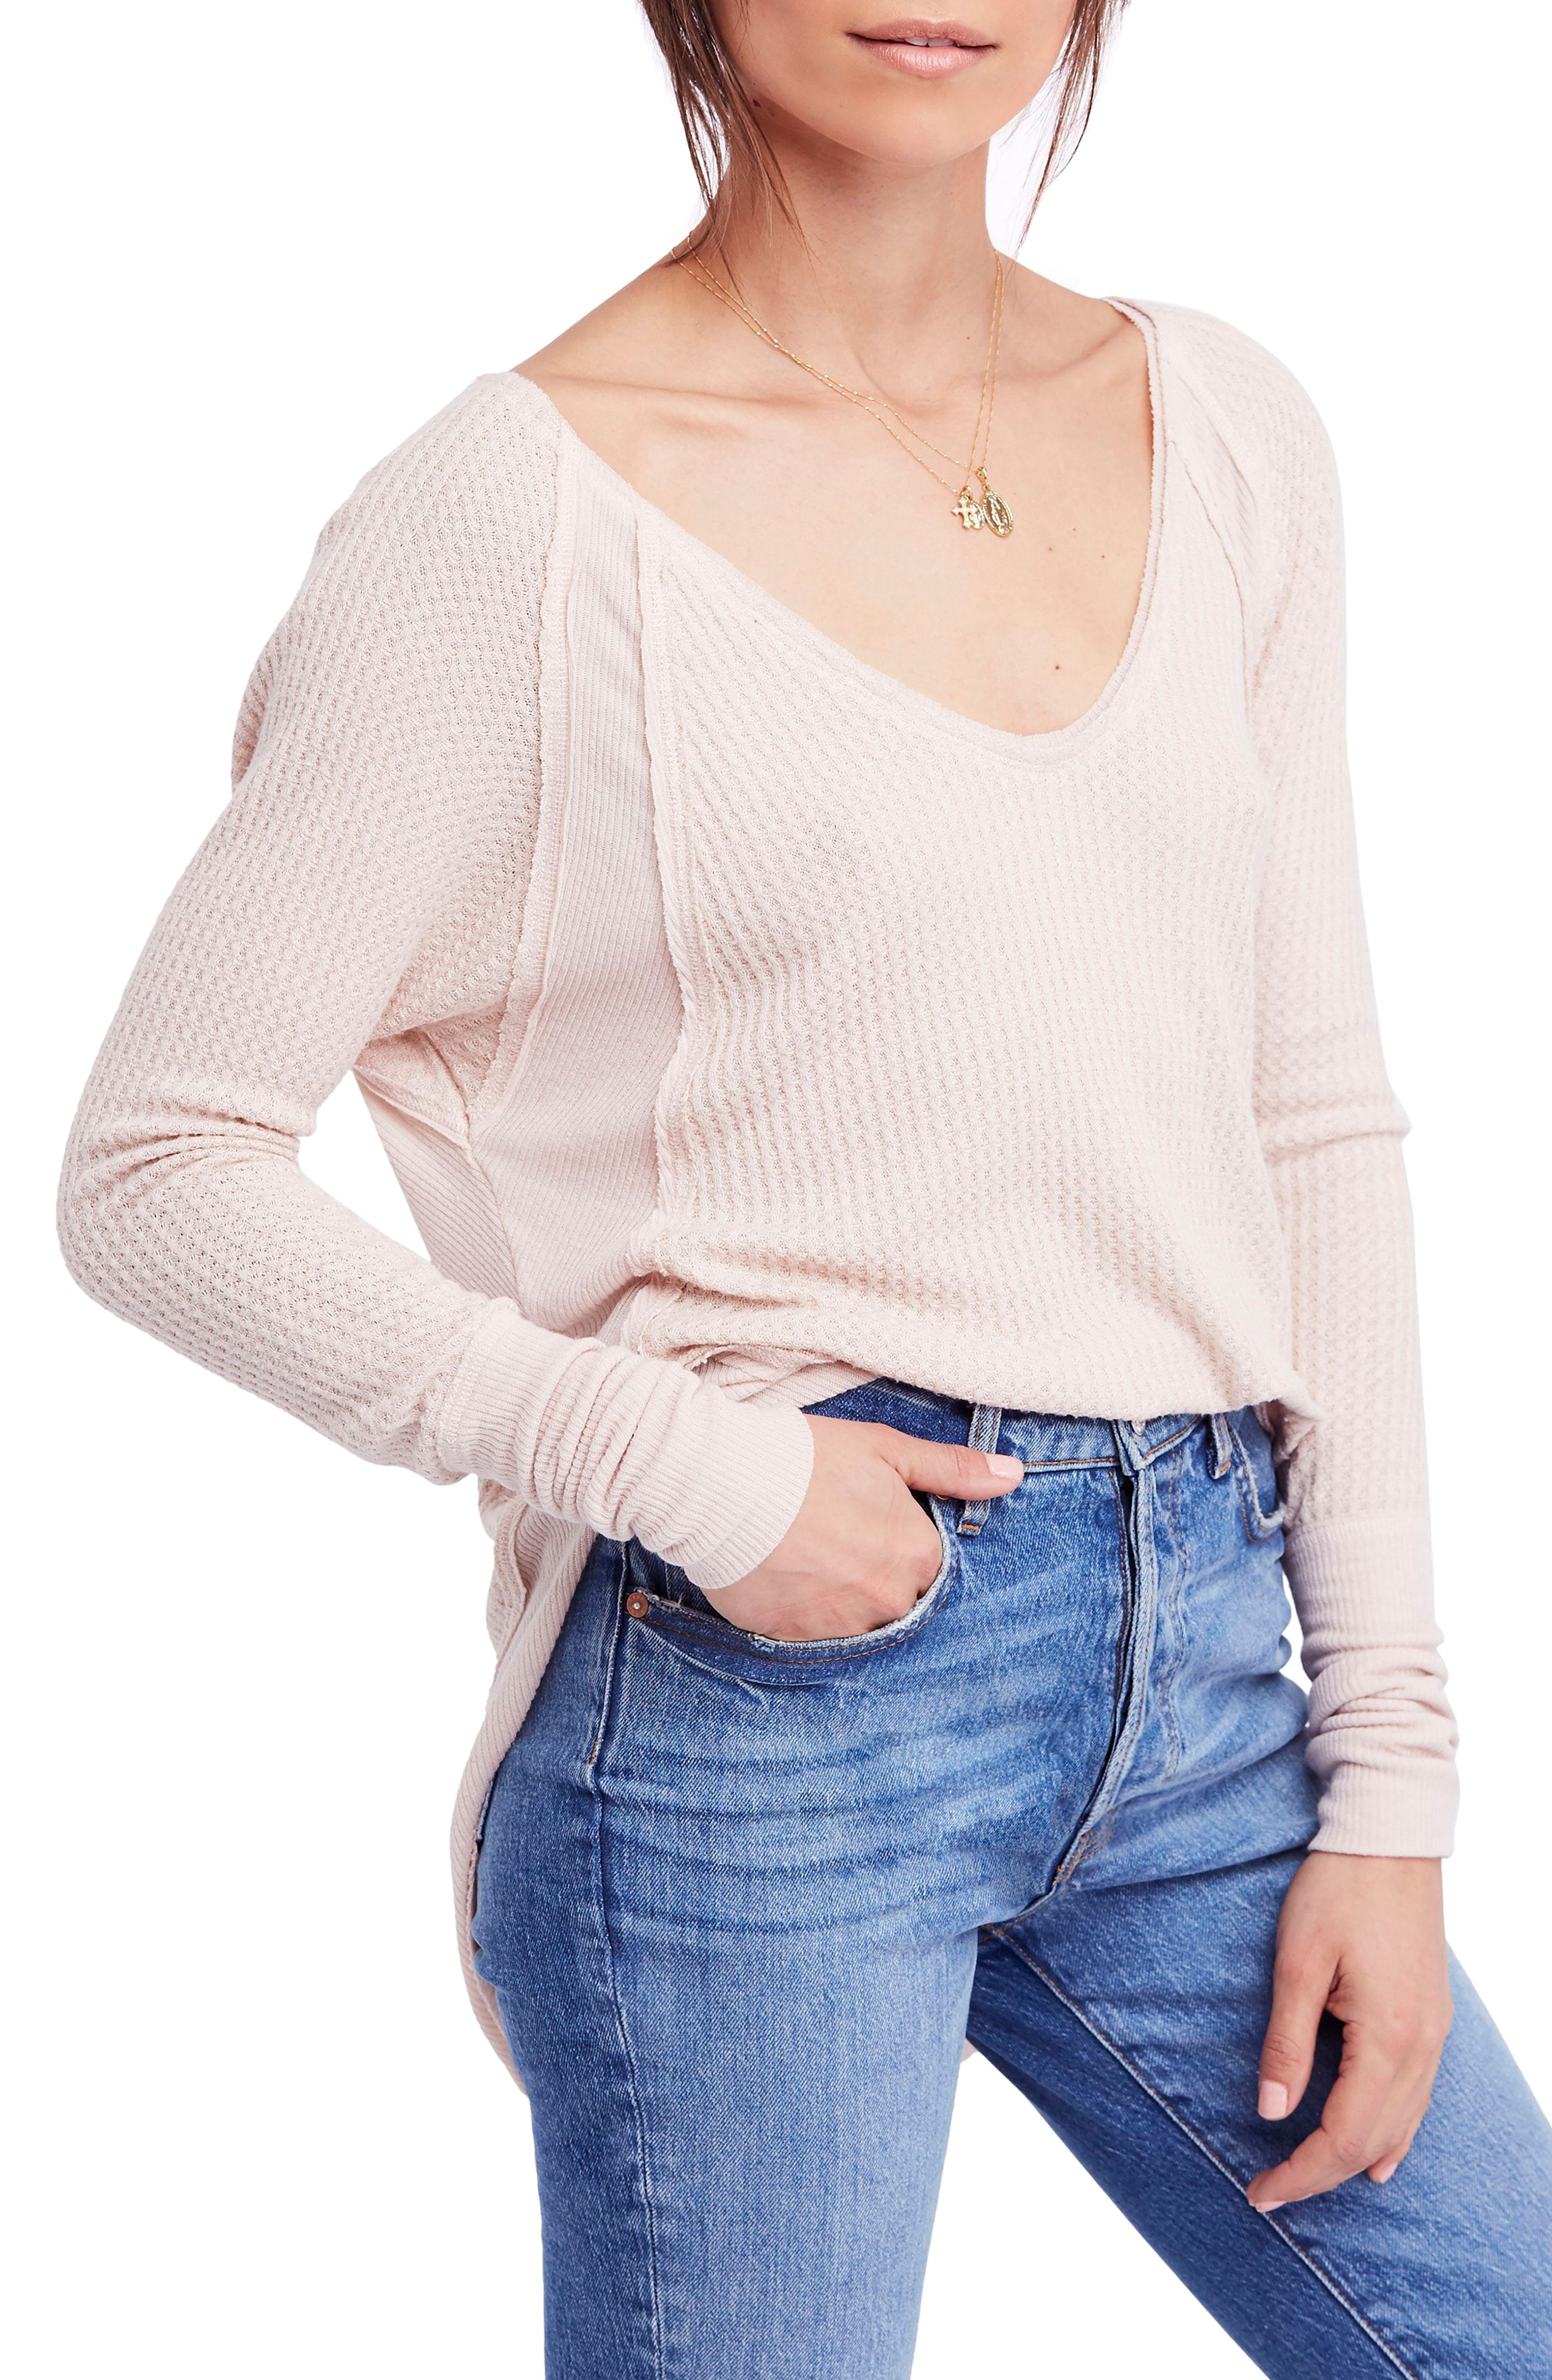 077eeb28d4f4e8 We the Free by Free People Catalina V-Neck Thermal Top